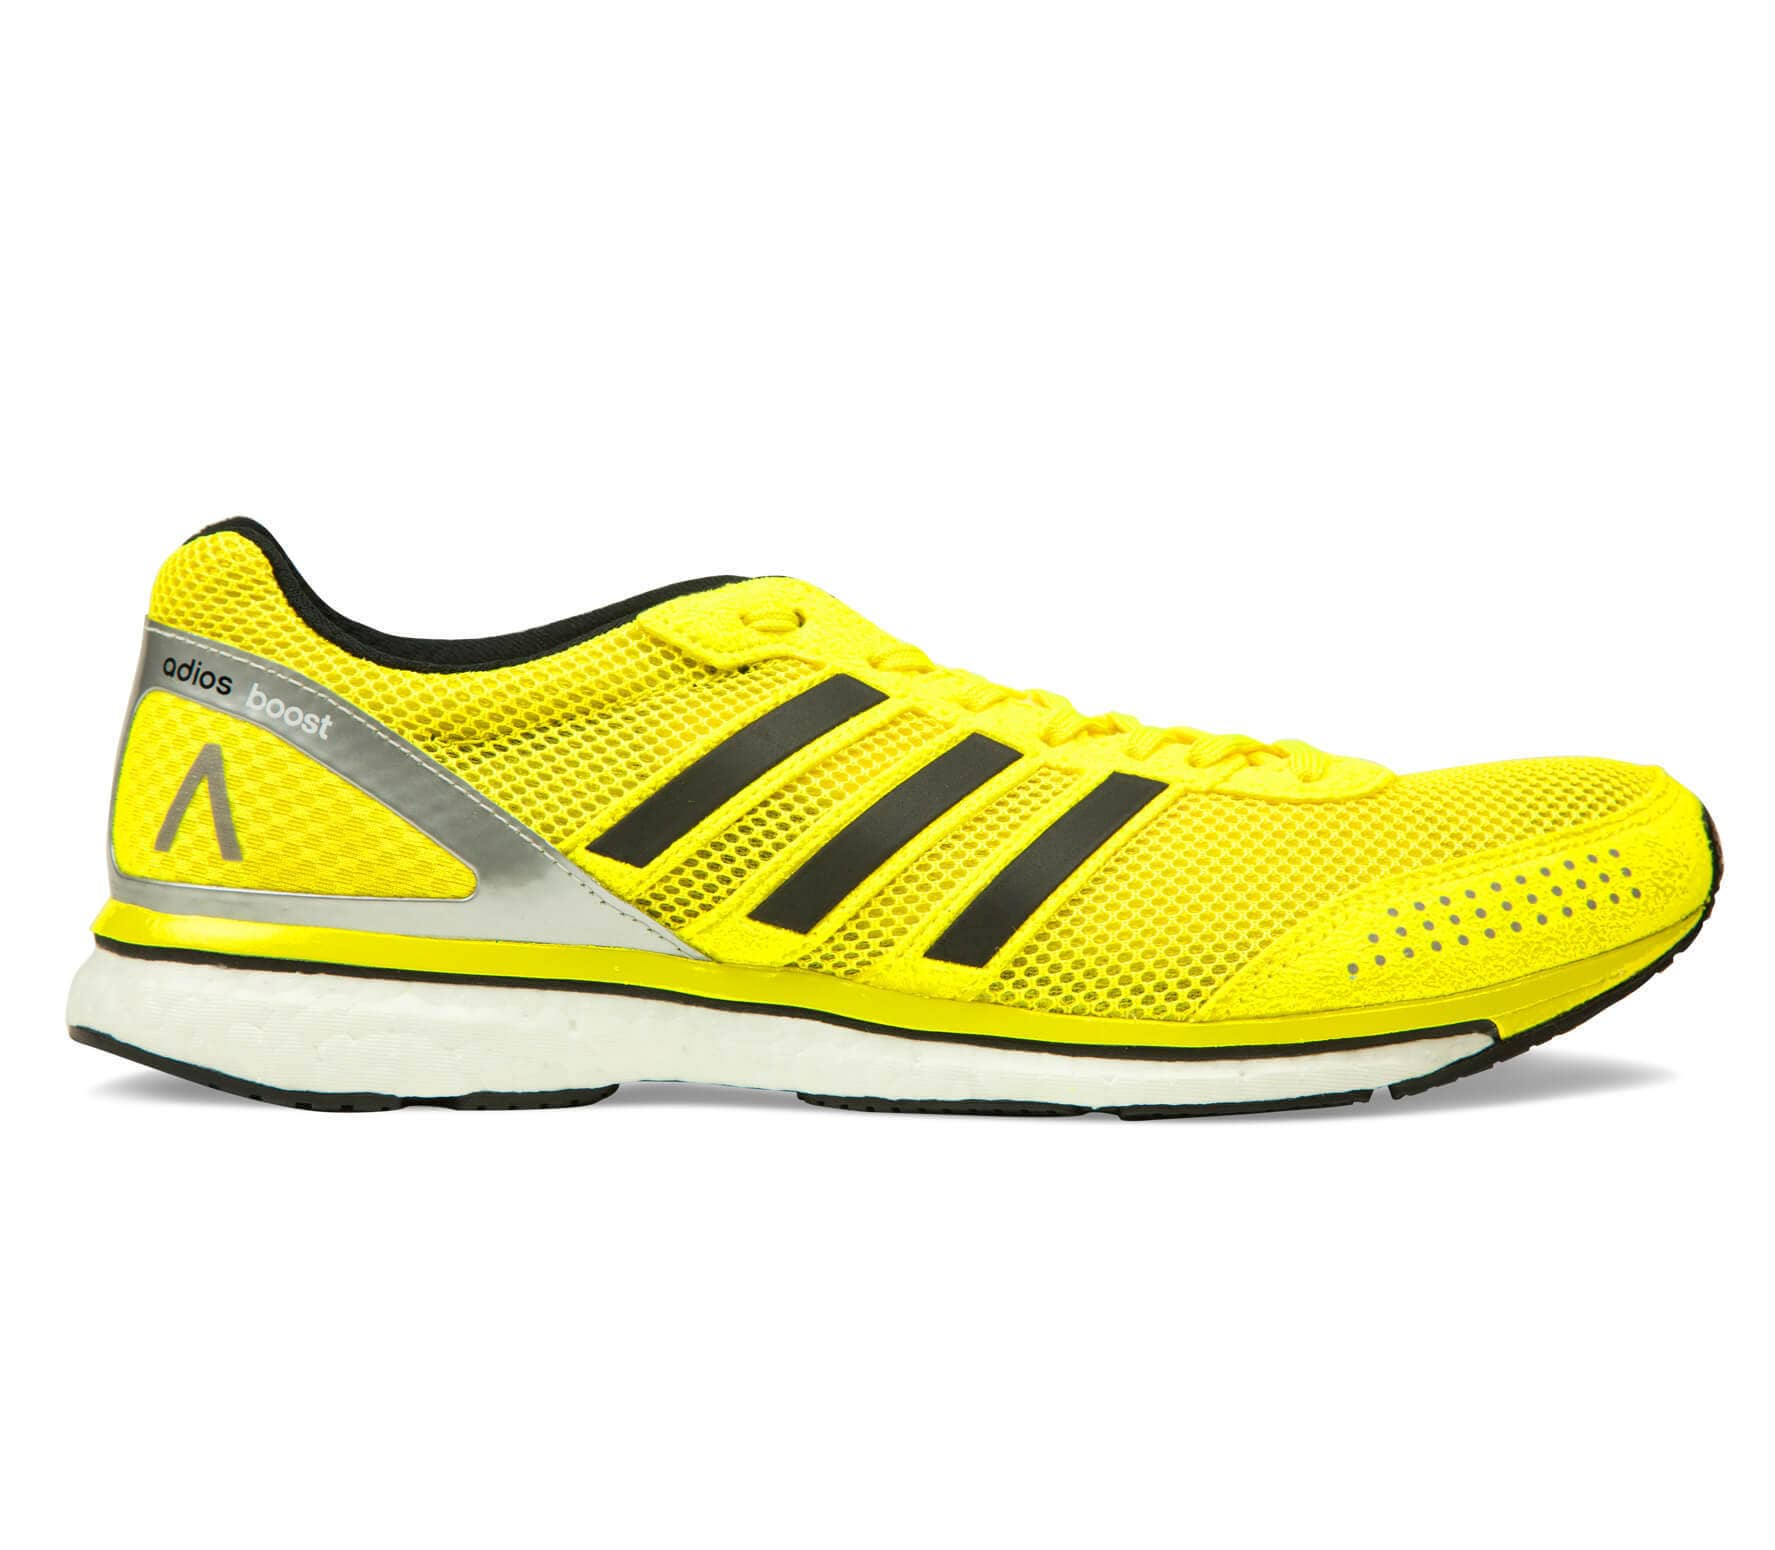 Adidas - Adizero Adios Boost 2 Haile men s running shoes (yellow ... 50eac7cbf